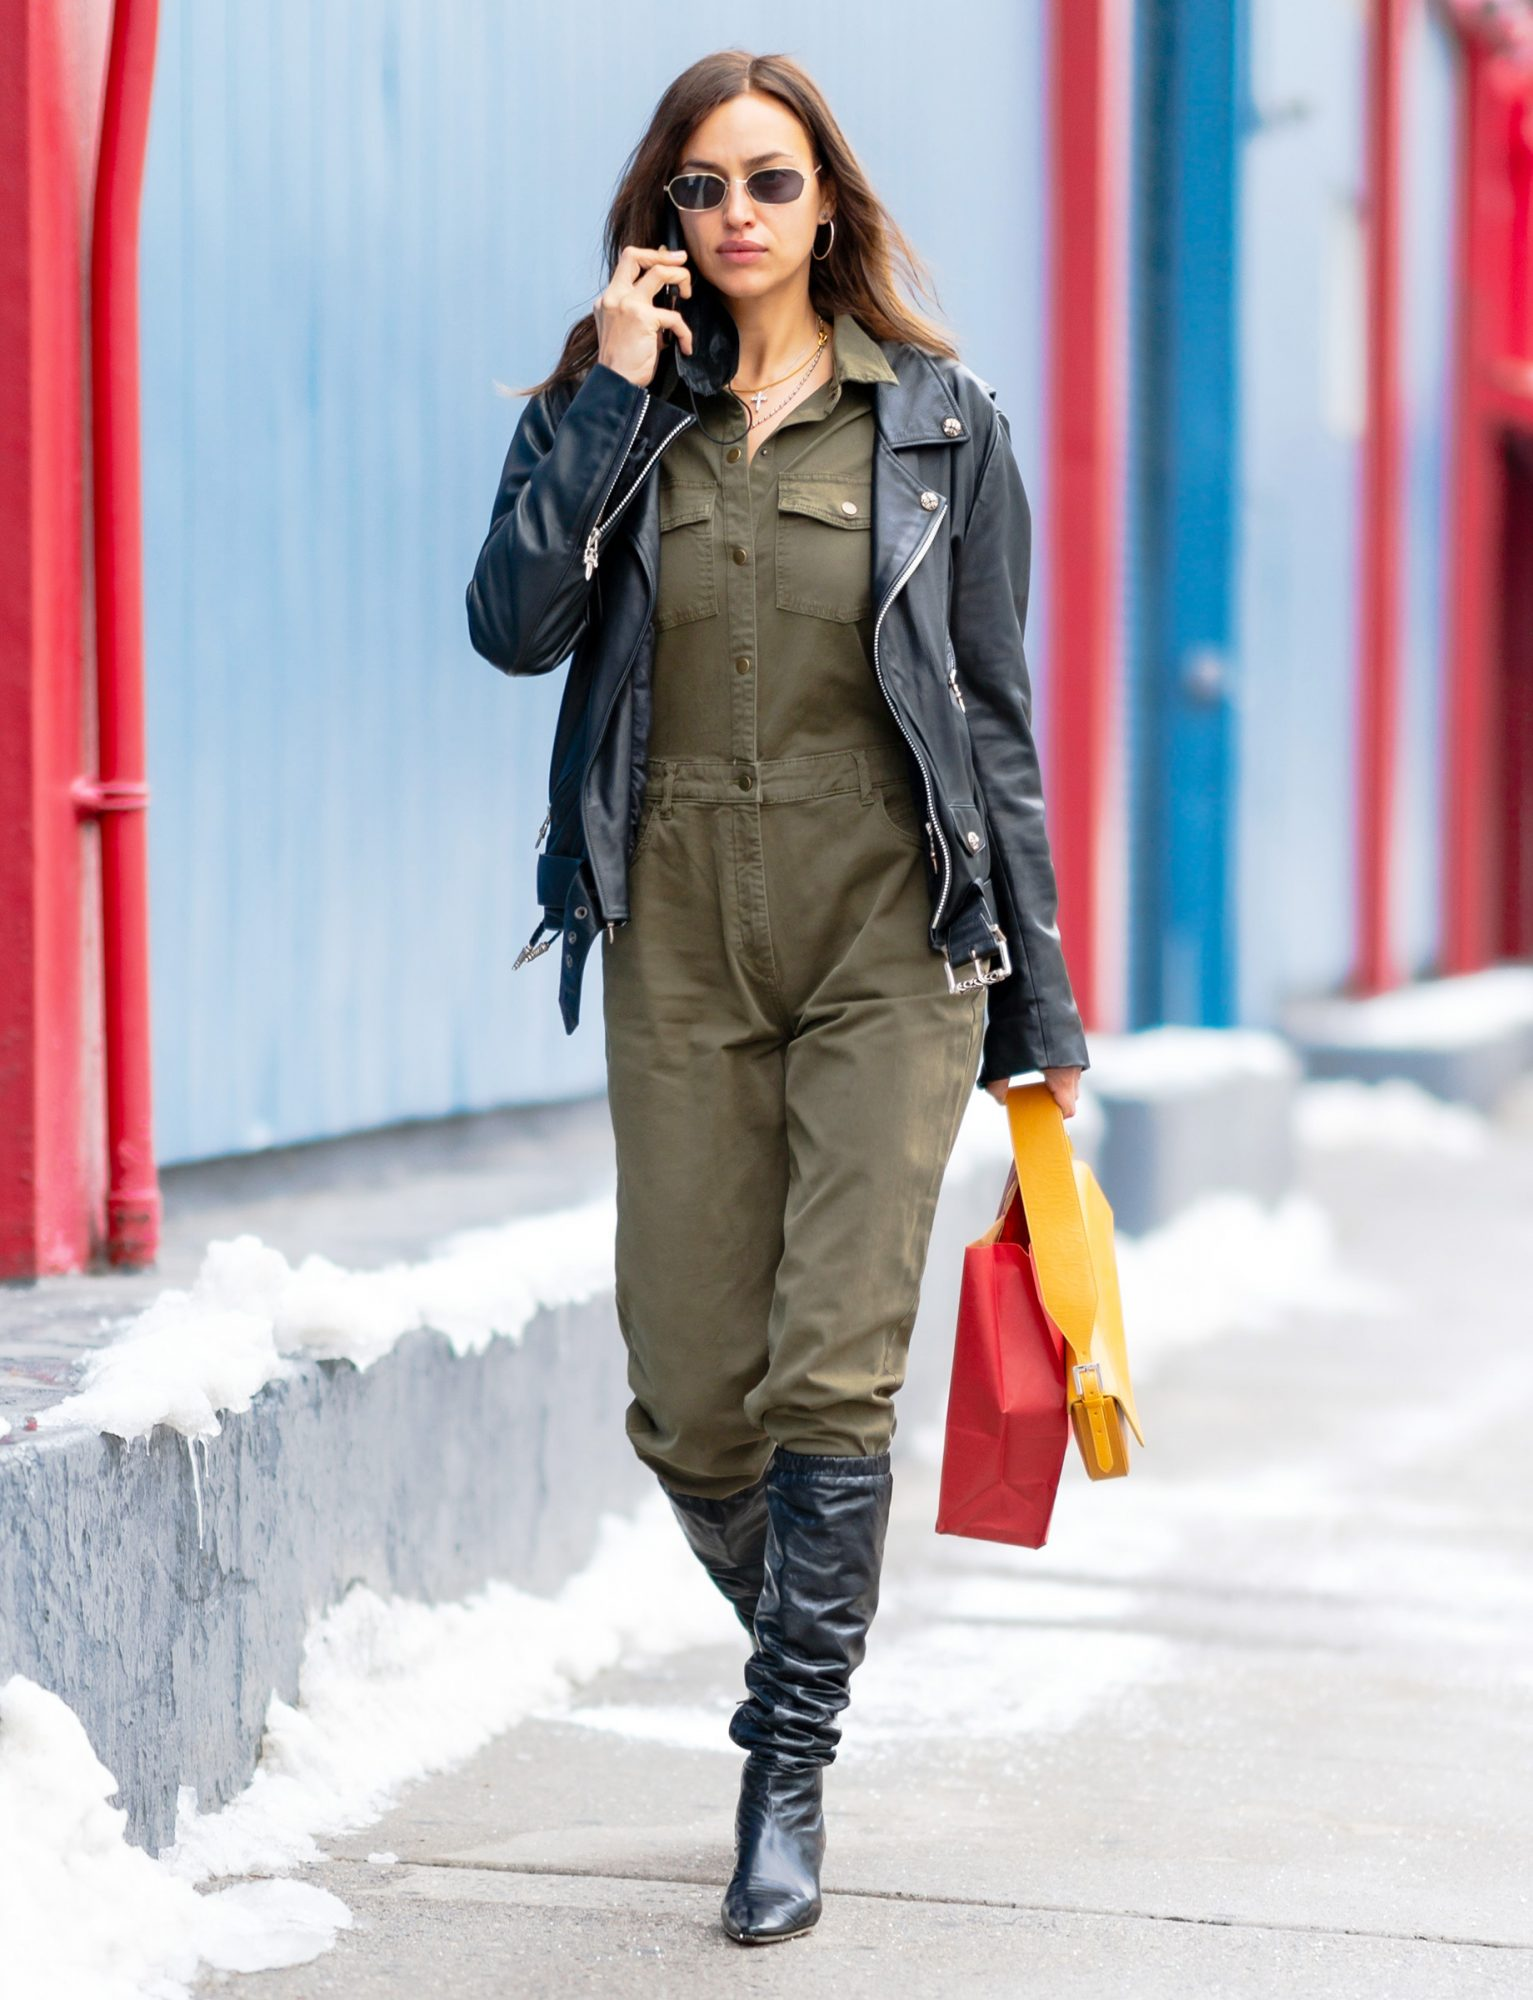 Irina Shayk is Pictured on a Stroll in New York City